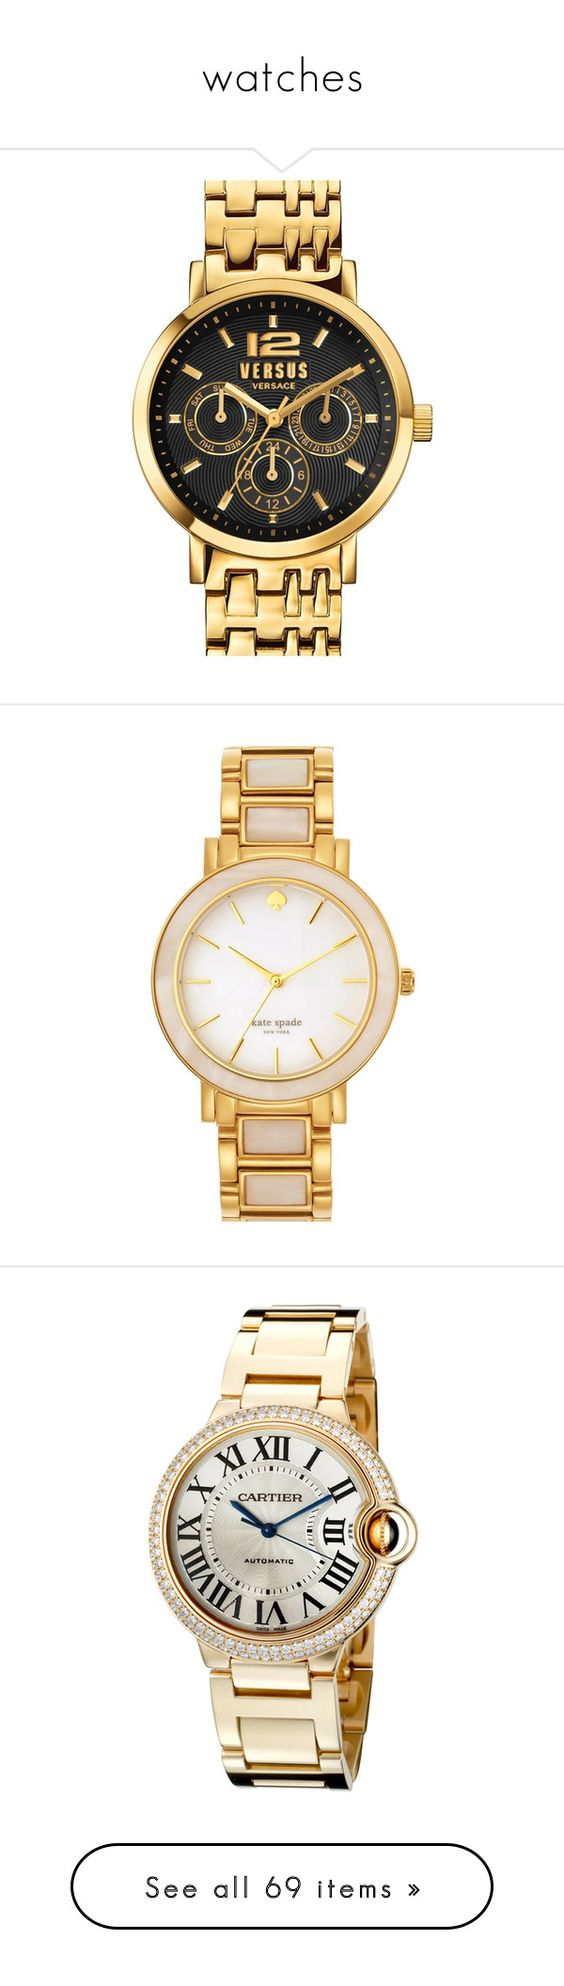 """watches"" by patcamppos ❤ liked on Polyvore featuring jewelry, watches, bezel jewelry, chronograph wrist watch, polish jewelry, chronograph watch, chronograph watches, kate spade, kate spade watches and watch bracelet"